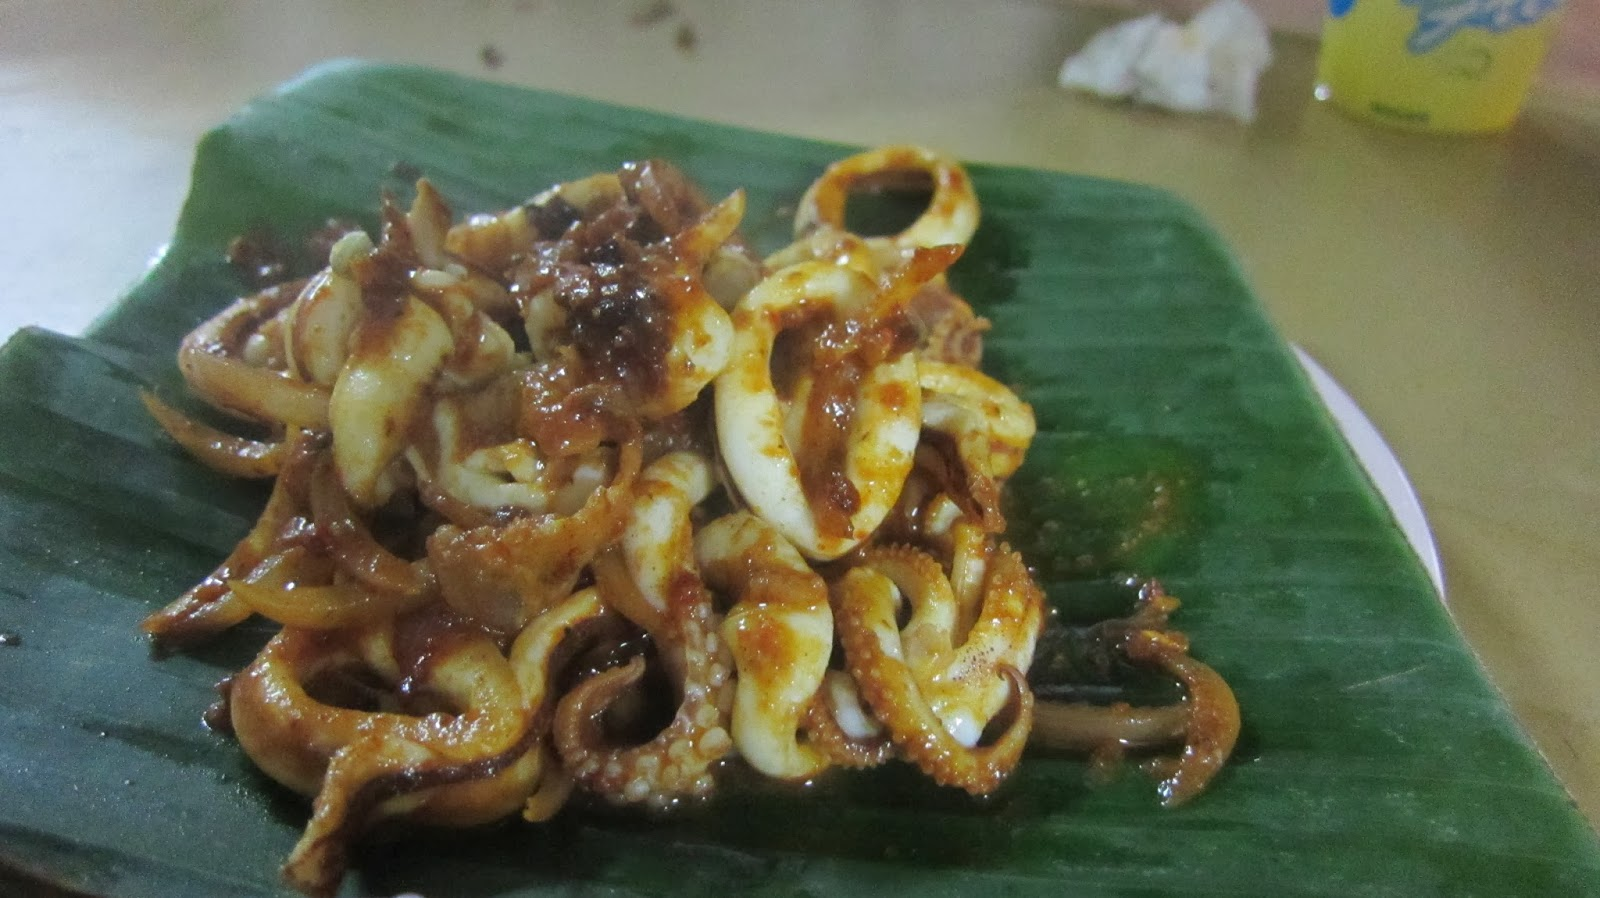 johor special grill sotong